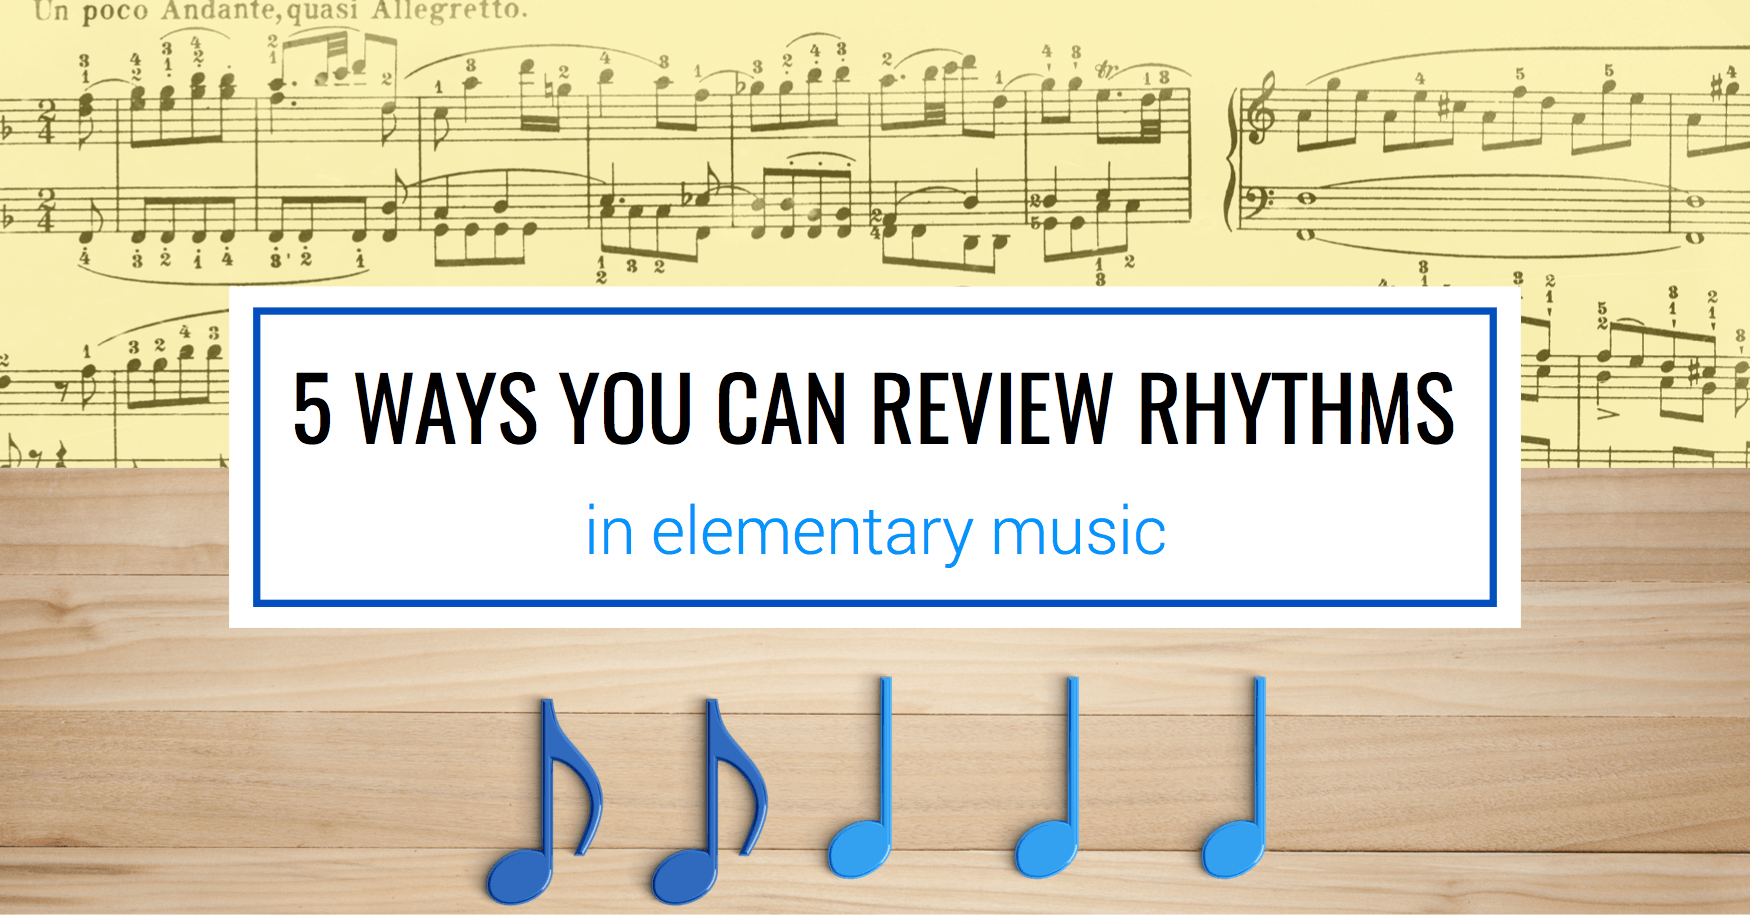 5 Ways You Can Review Rhythms in Elementary Music